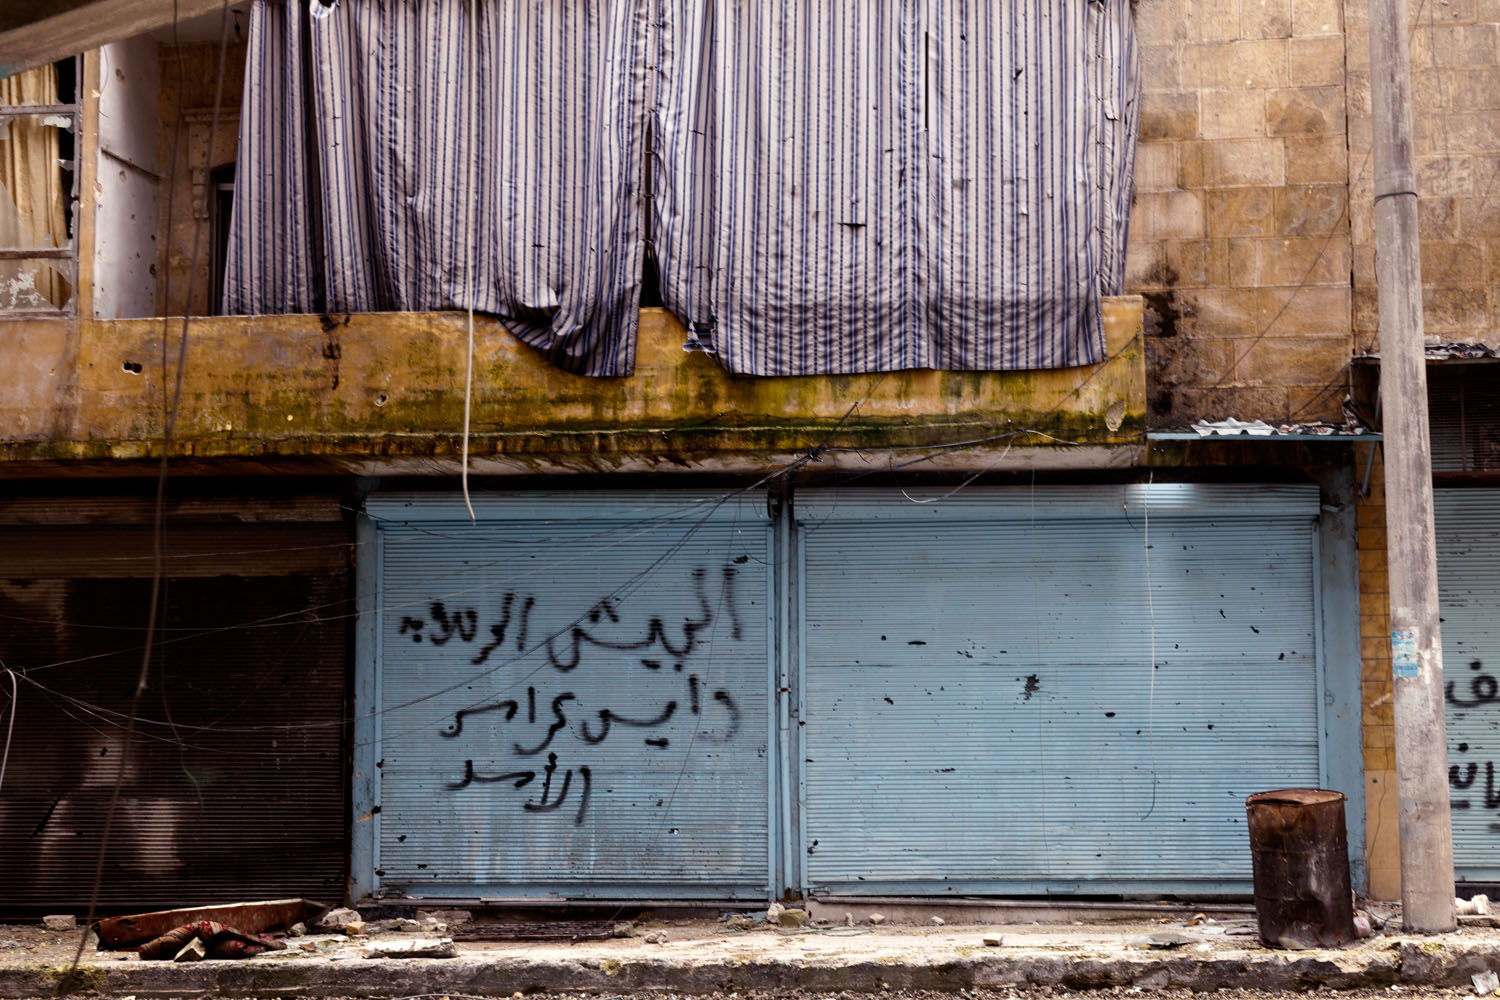 An abandoned storefront in Aleppo.